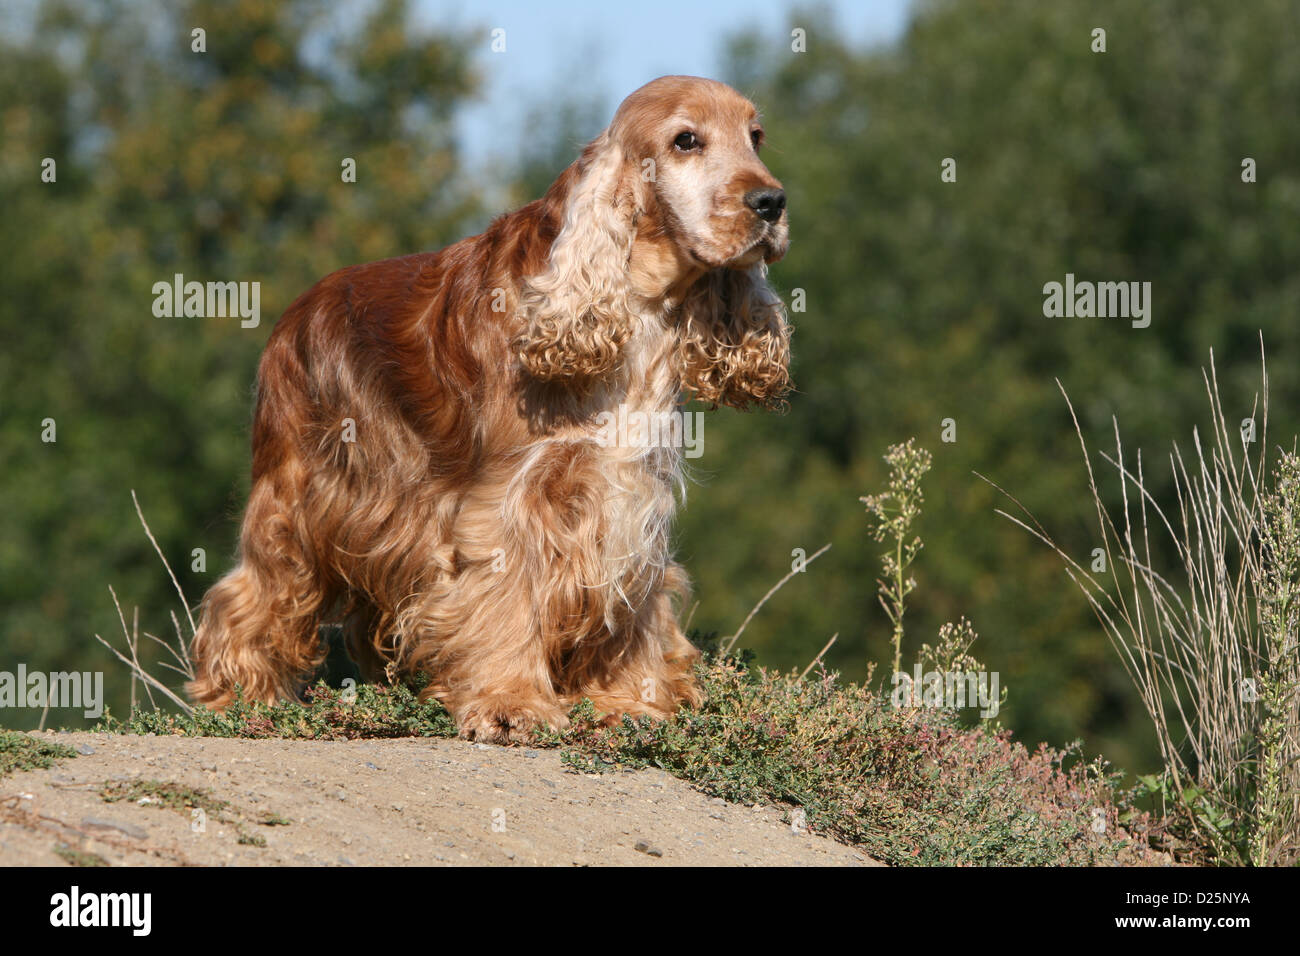 For adult english cocker spaniel consider